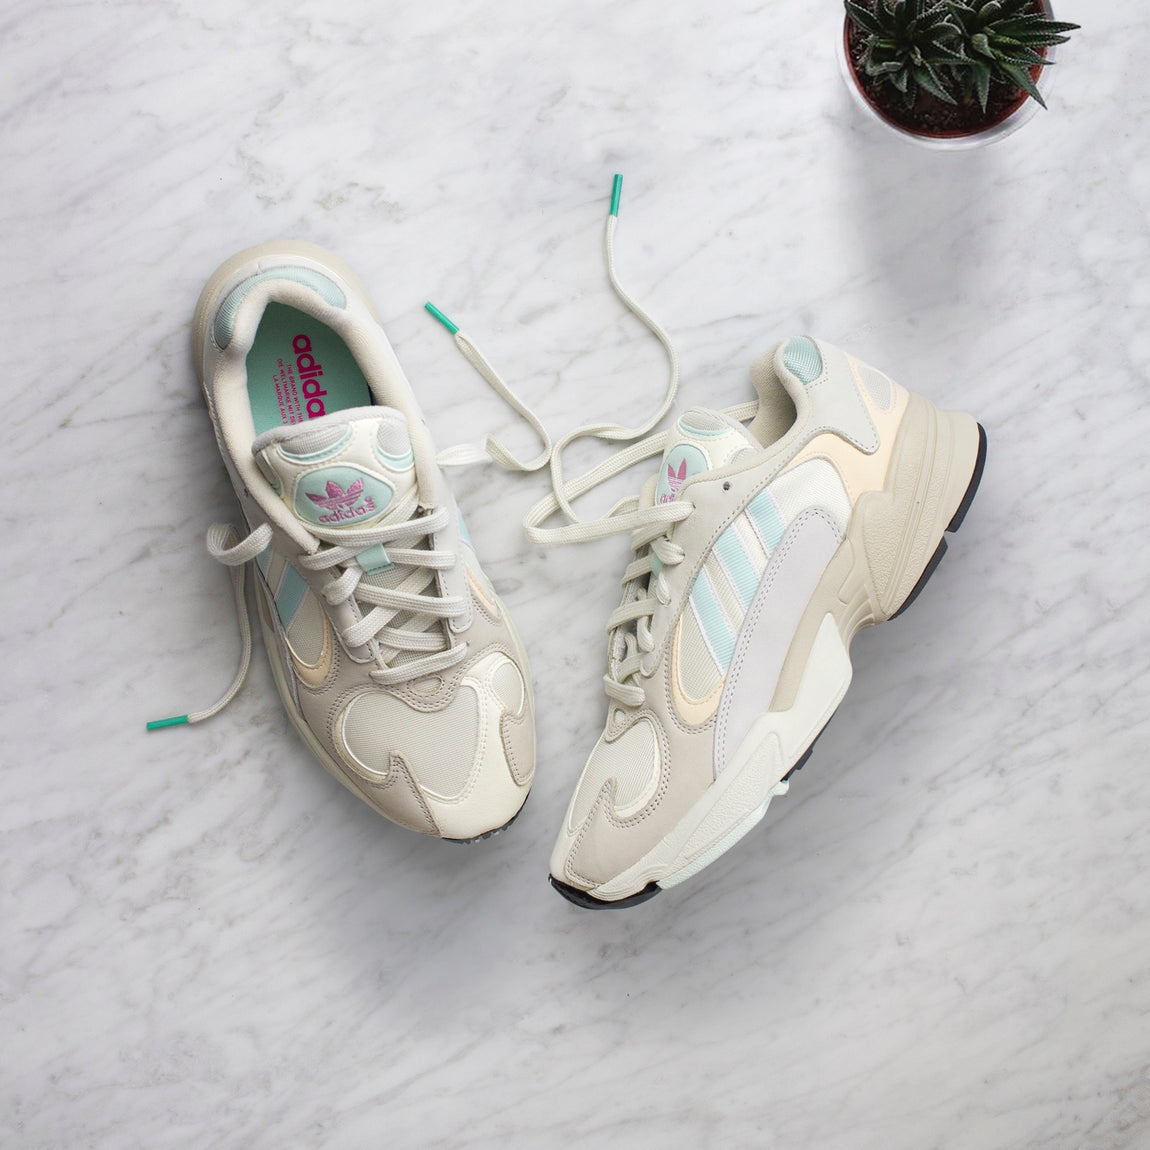 Adidas Yung-1 (Off White/Ice Mint) - Adidas Yung-1 (Off White/Ice Mint) -